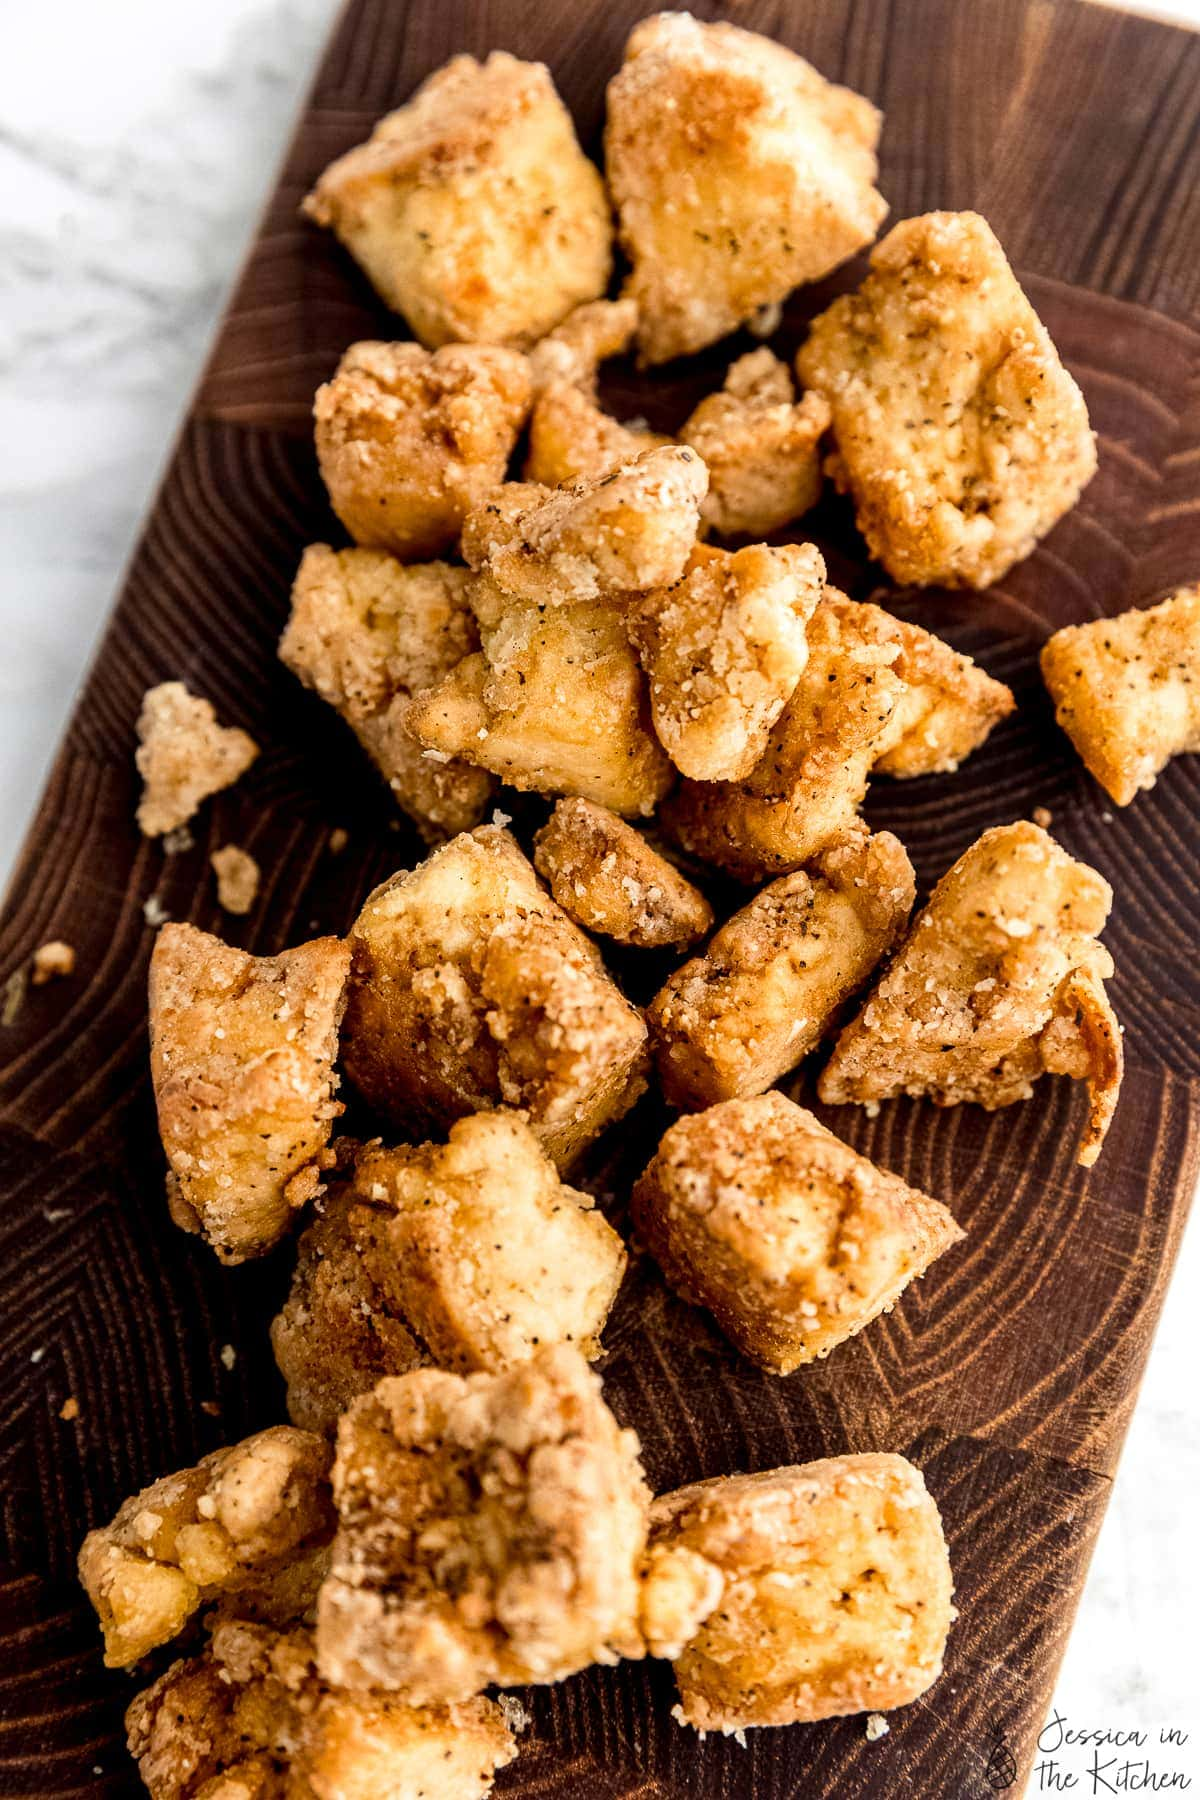 Crispy tofu on a cutting board.